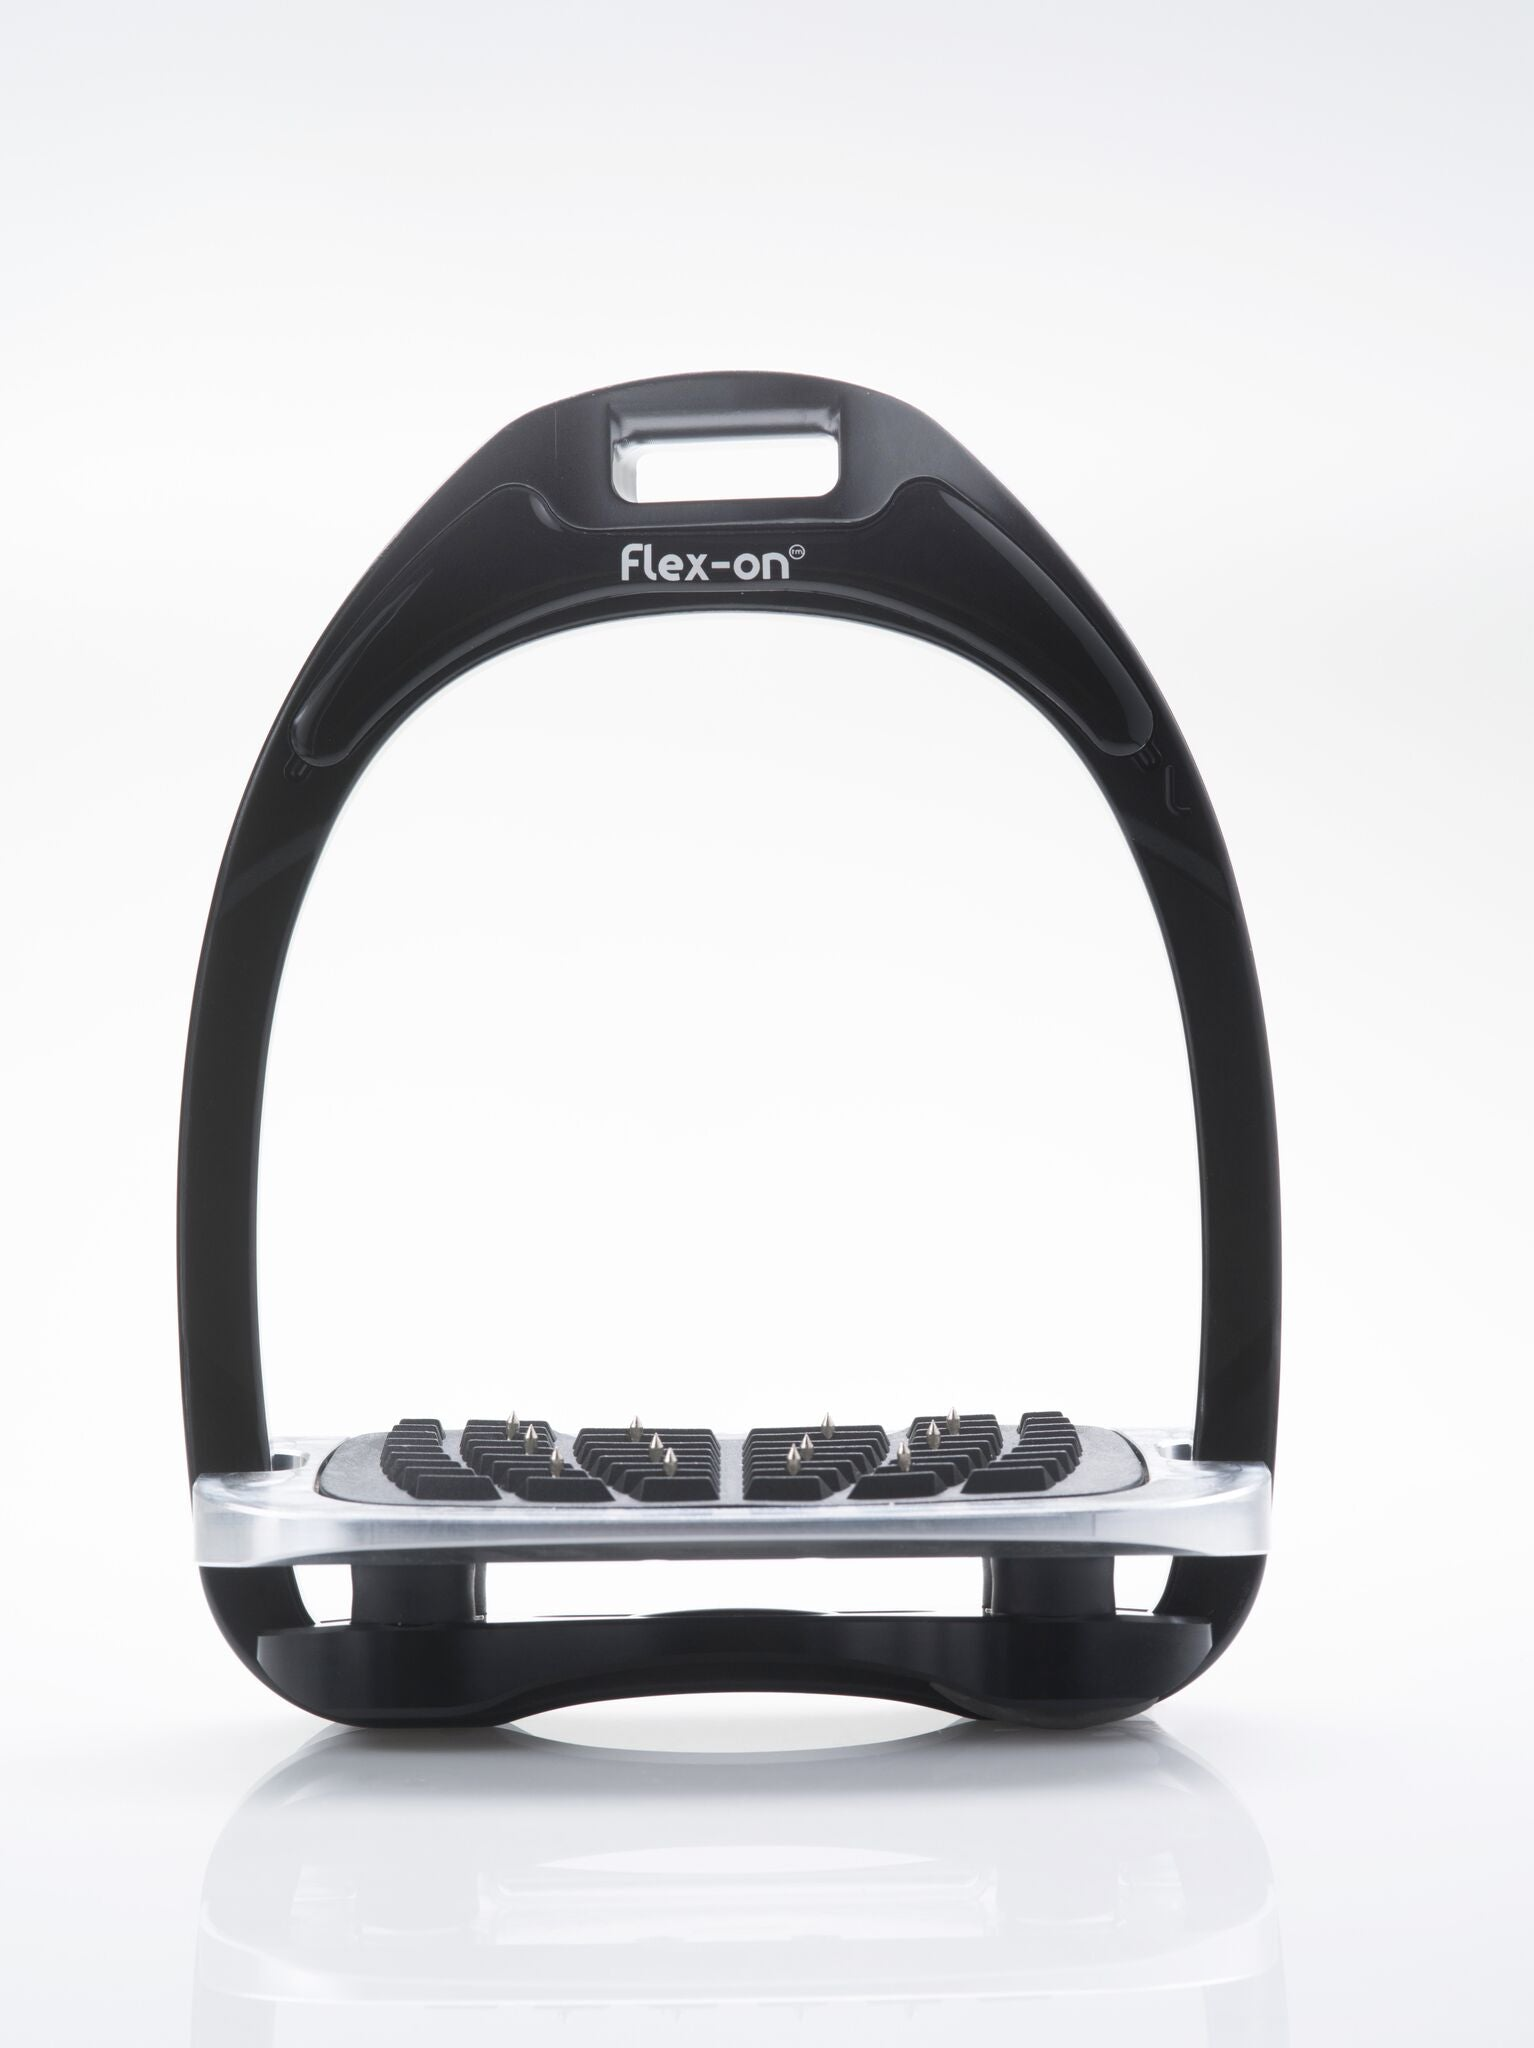 Flex-on Aluminium Stirrups - BLACK -  WITH FOOTREST & ELASTOMER CHOICE - Divine Equestrian